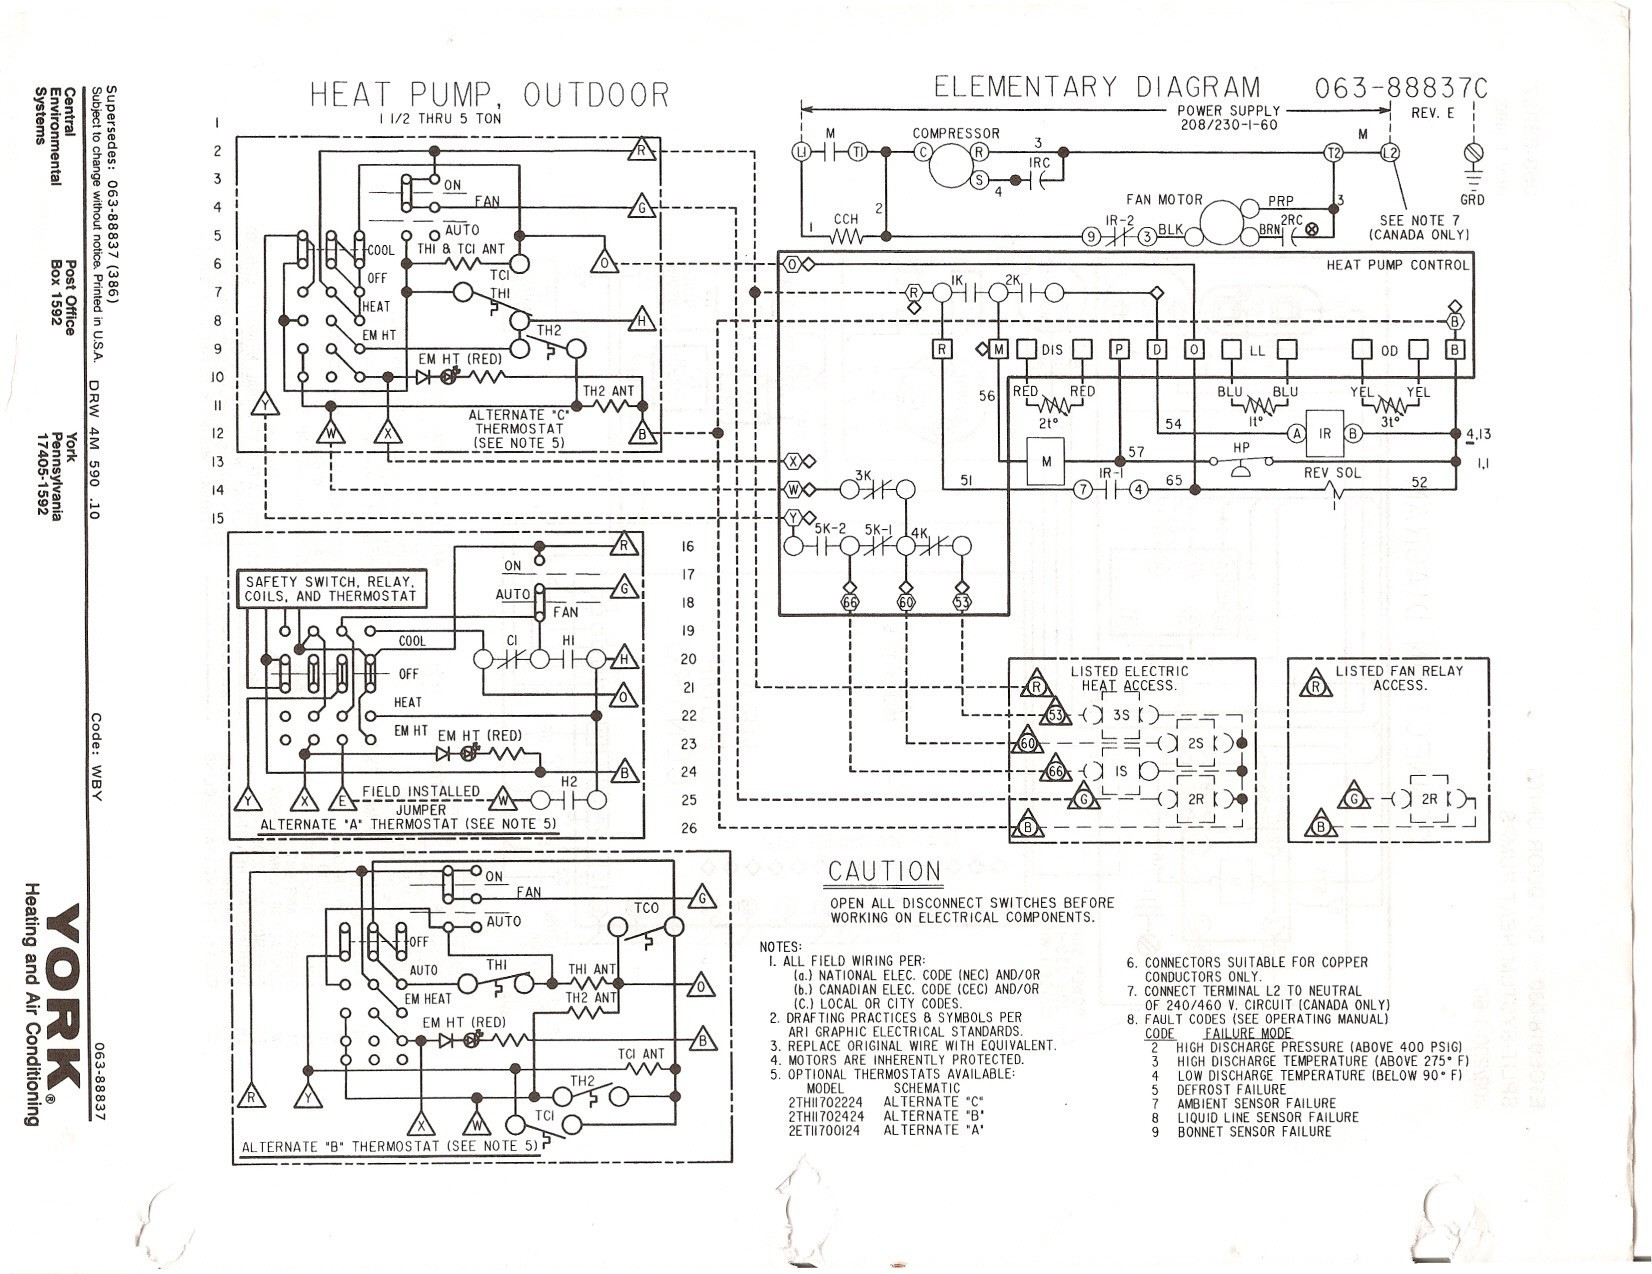 York Heat Pump Wiring Diagrams - Data Wiring Diagram Schematic - Heat Pump Wiring Diagram Schematic